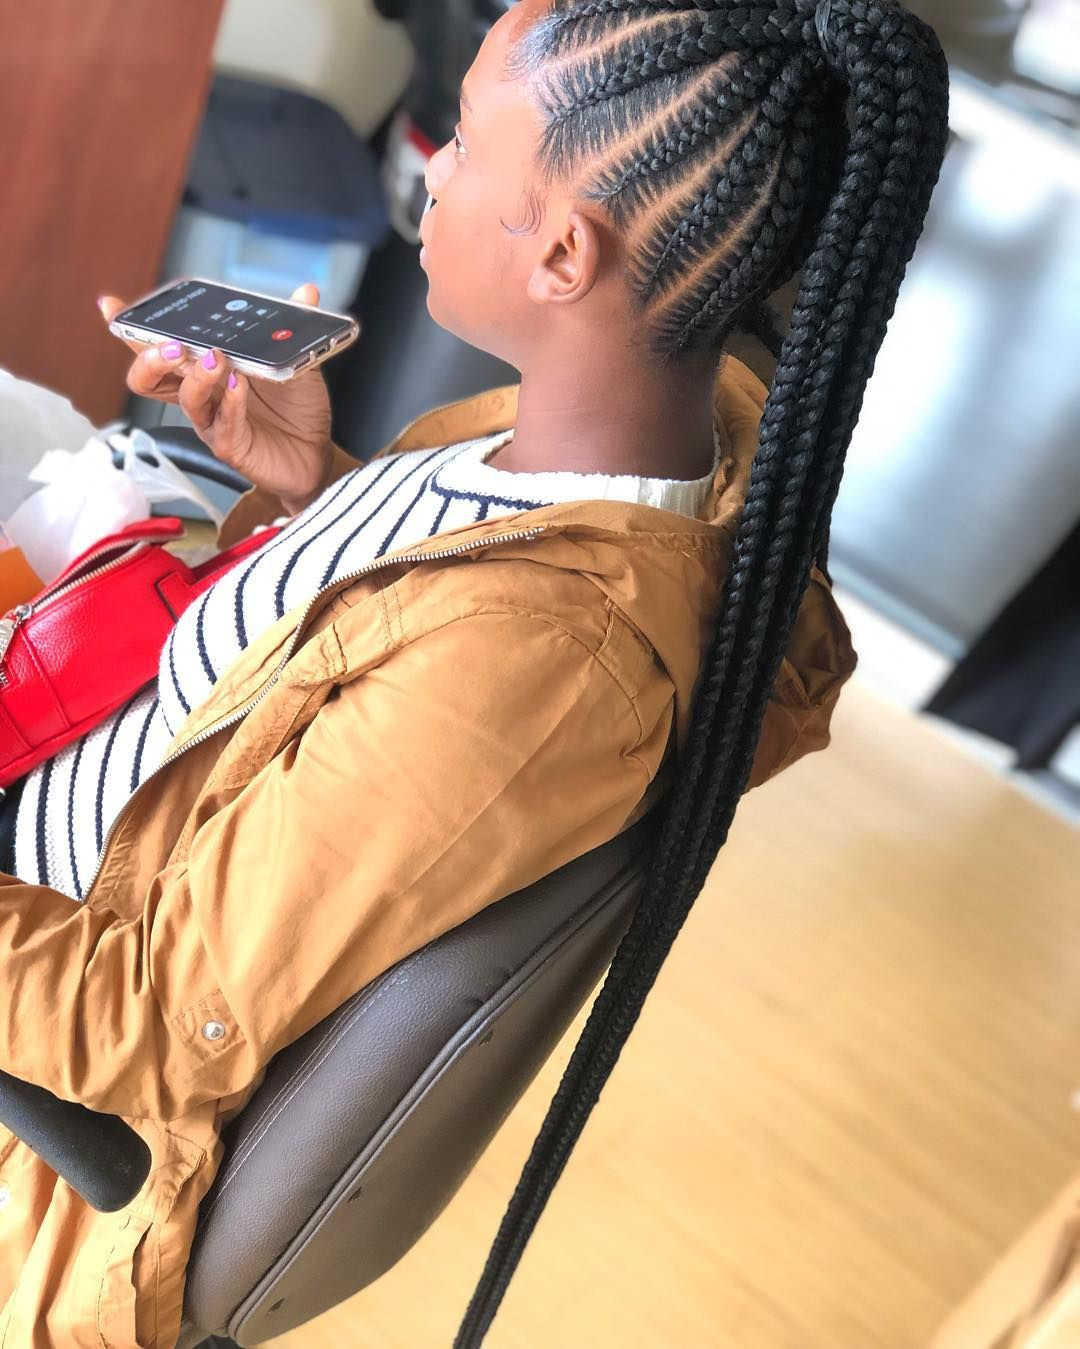 Brag About Braids On Instagram And Done 10 12 Feed In Braids Xtra Long Feed In Braid Braids Instagram